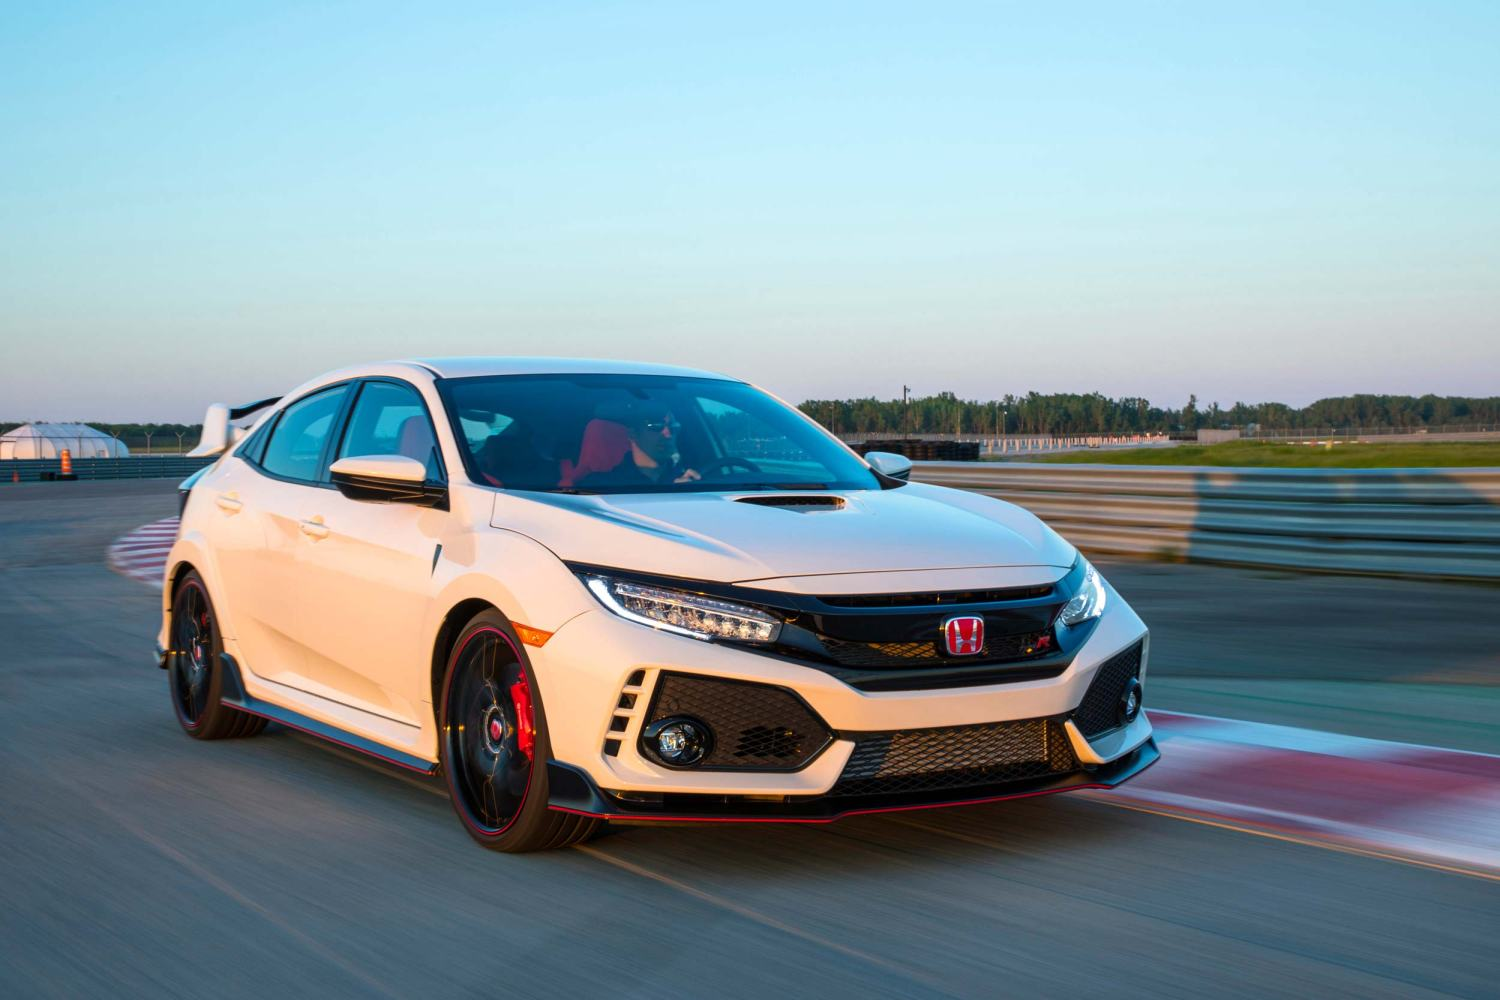 Big fun: Small cars with a manual transmission | Motoring